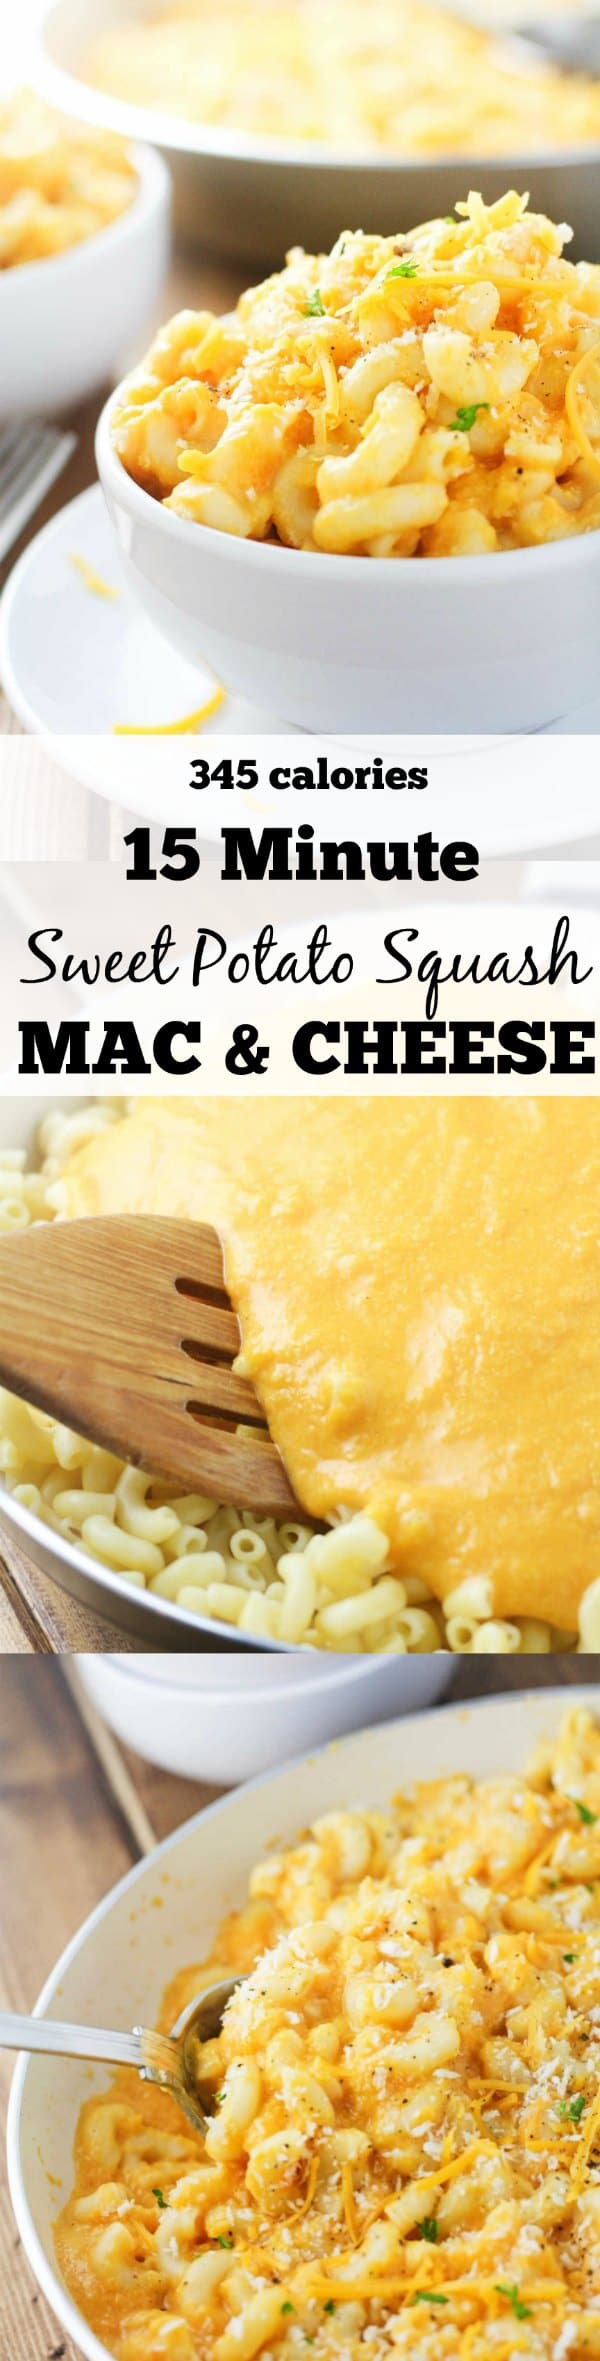 15 Minute, Sweet Potato Squash Mac and Cheese. A deliciously healthy alternative to traditional mac and cheese that is both hearty and satisfying! www.itscheatdayeveryday.com